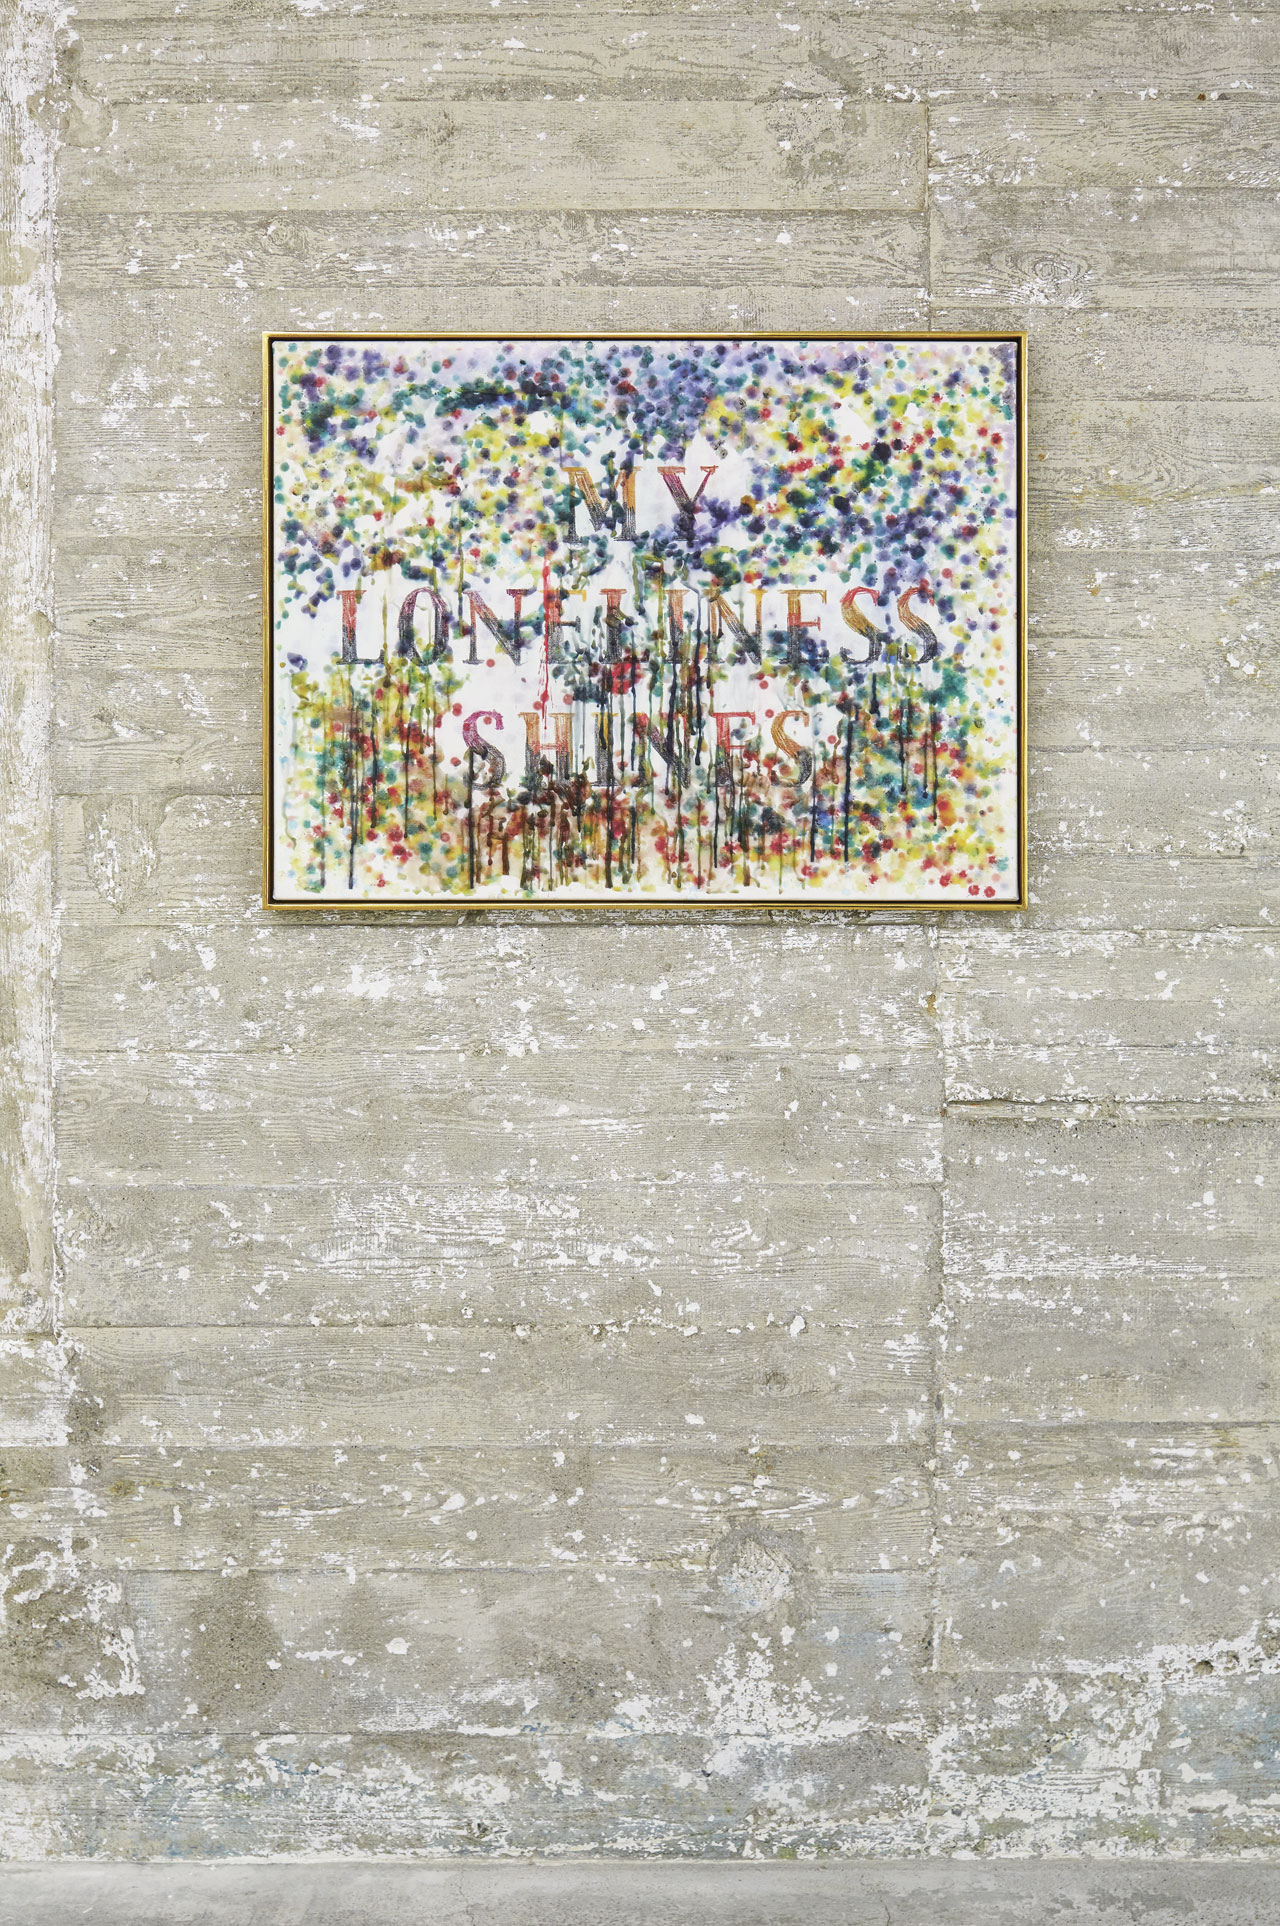 Friedrich Kunath, Ohne Titel (2006) | Wax crayon and colored pencil on canvas | 60 × 80 × 2 cm | Boros Collection, Berlin. Photo by NOSHE.